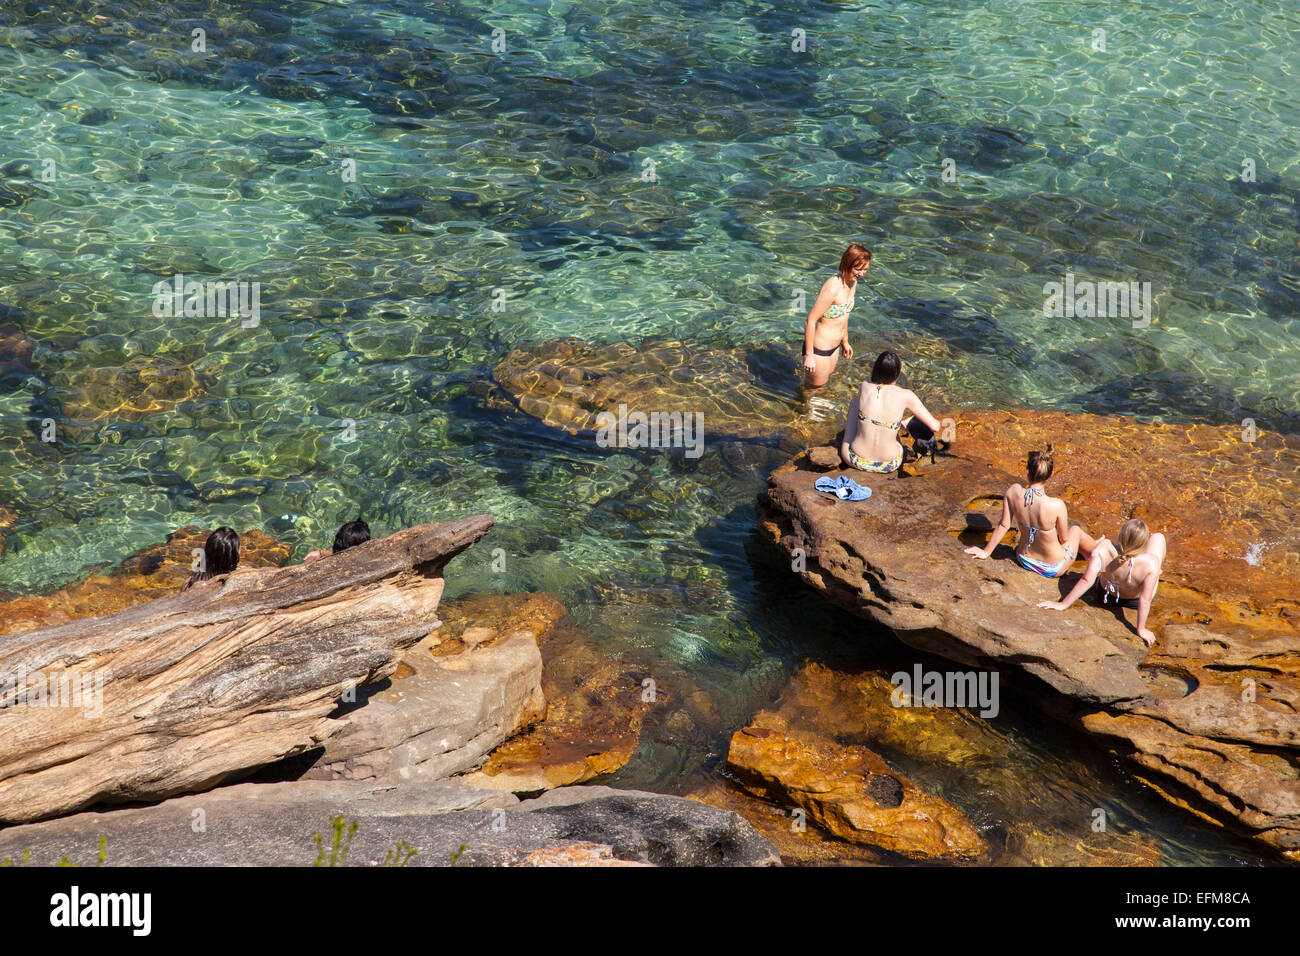 Les femmes assises sur un rocher à Gordon's Bay, Sydney, Australie Photo Stock